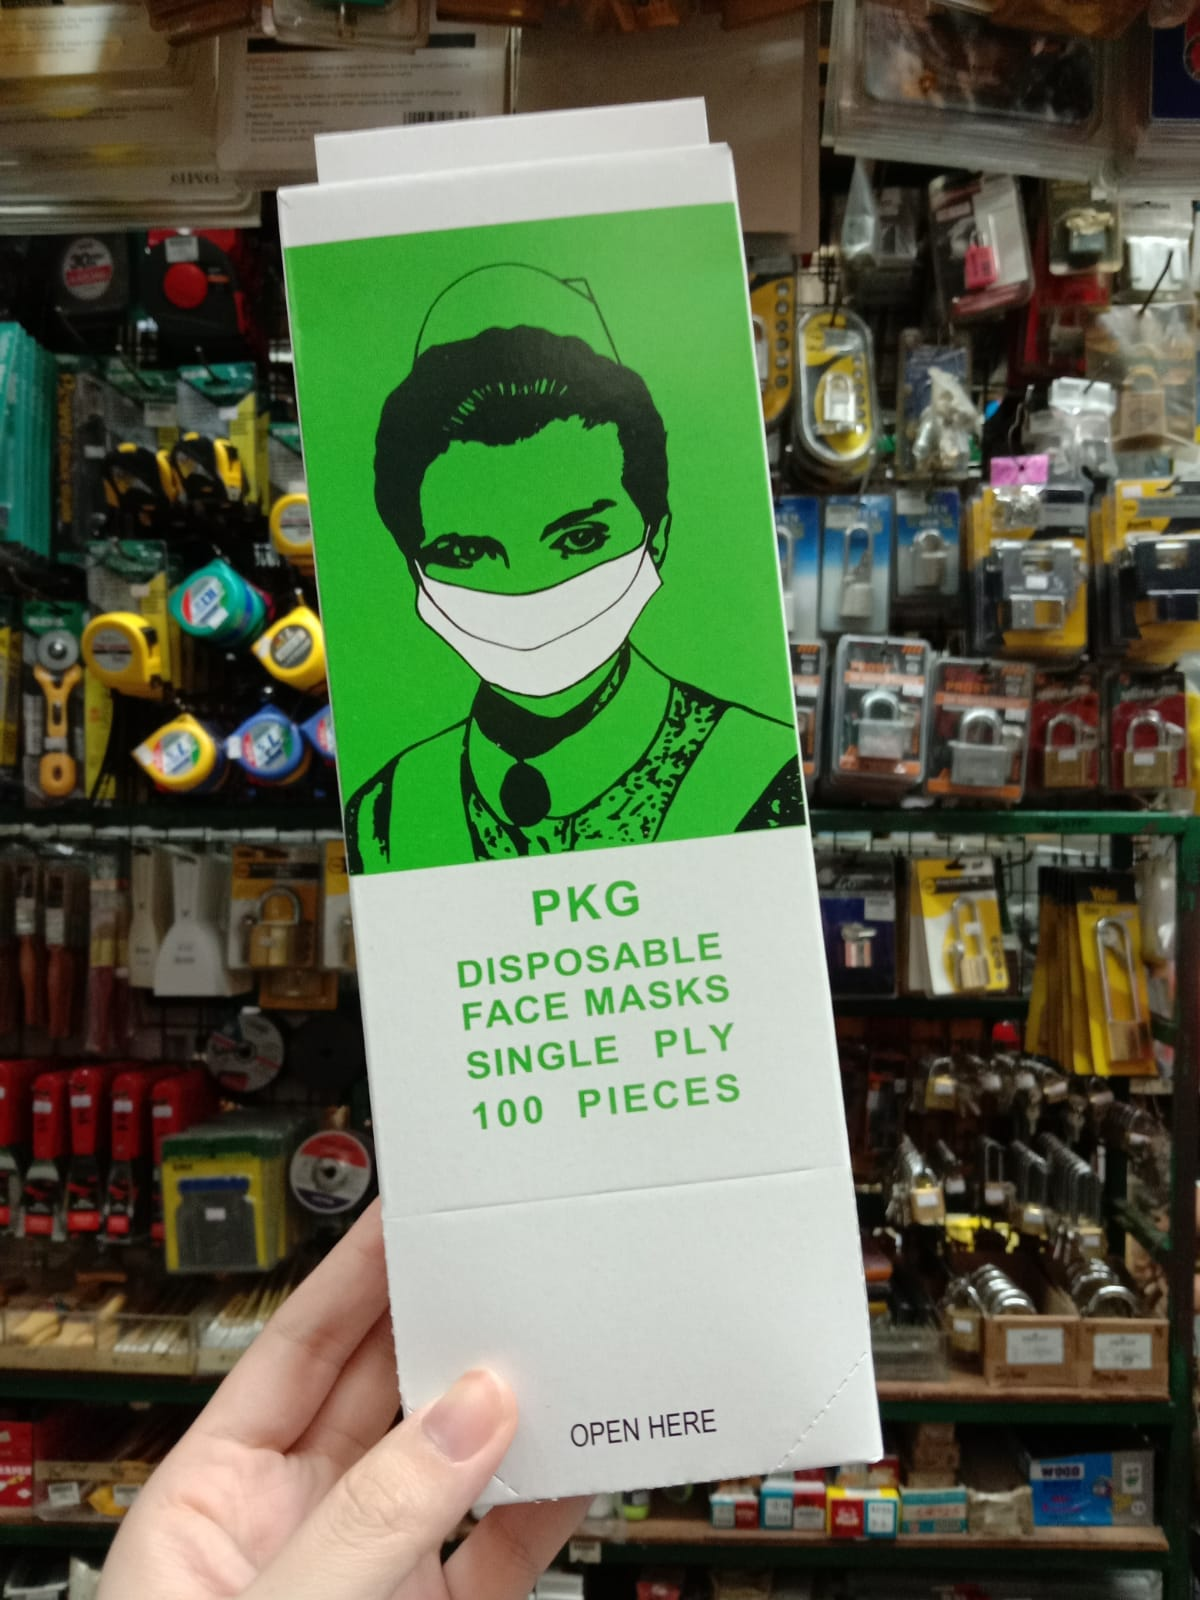 PKG Disposable Face Masks